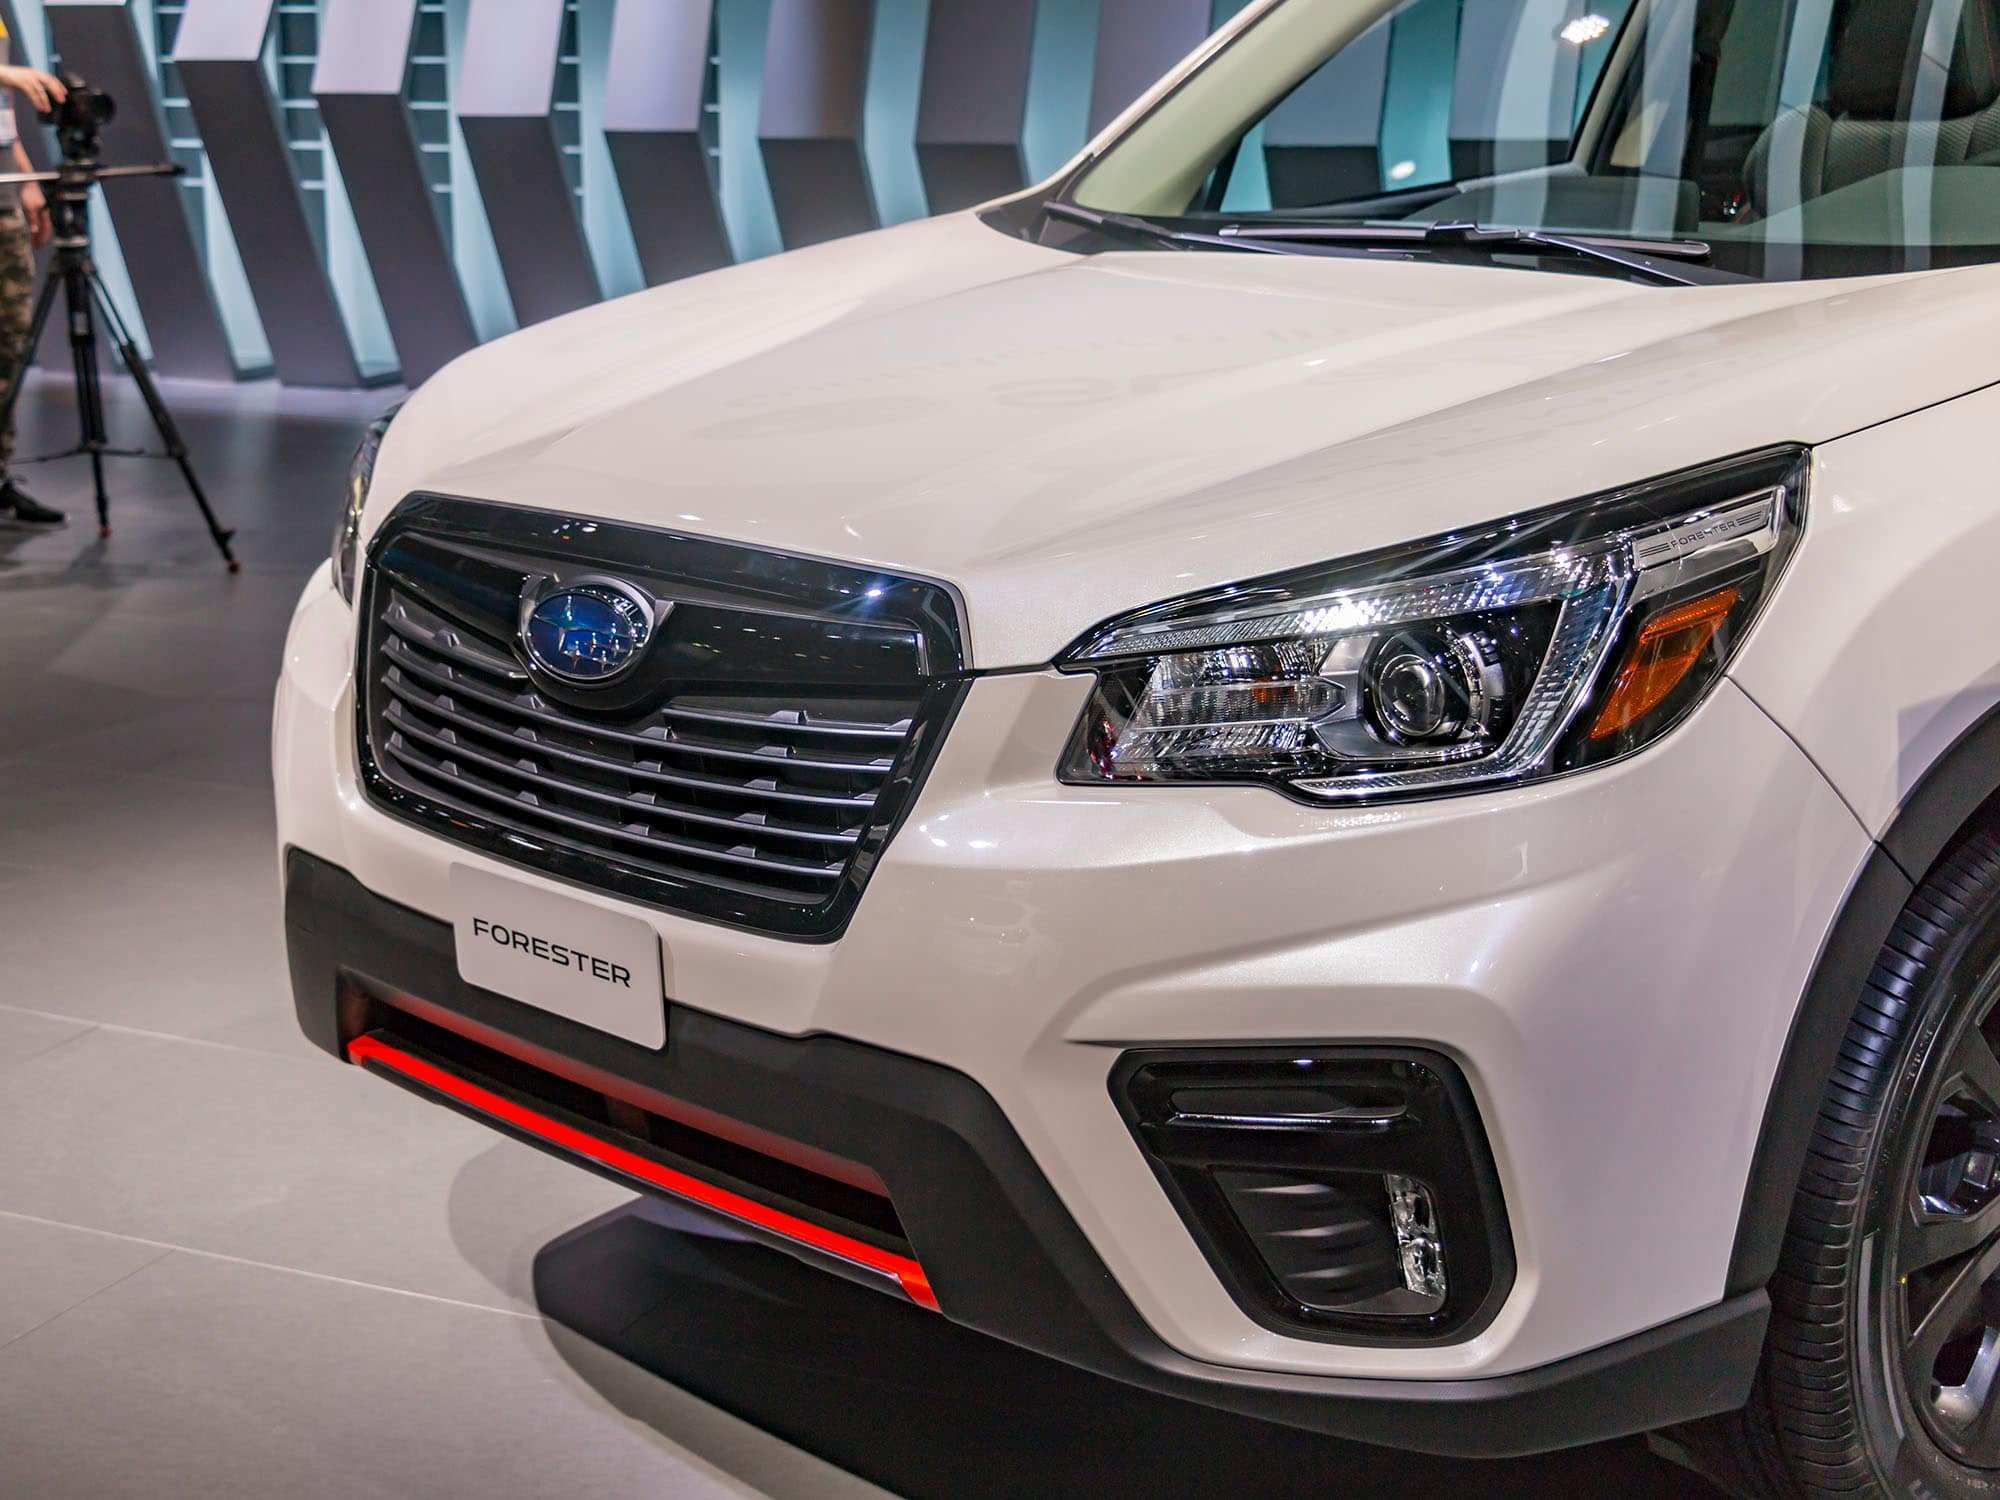 48 The Subaru Forester 2019 Green Spy Shoot Style by Subaru Forester 2019 Green Spy Shoot